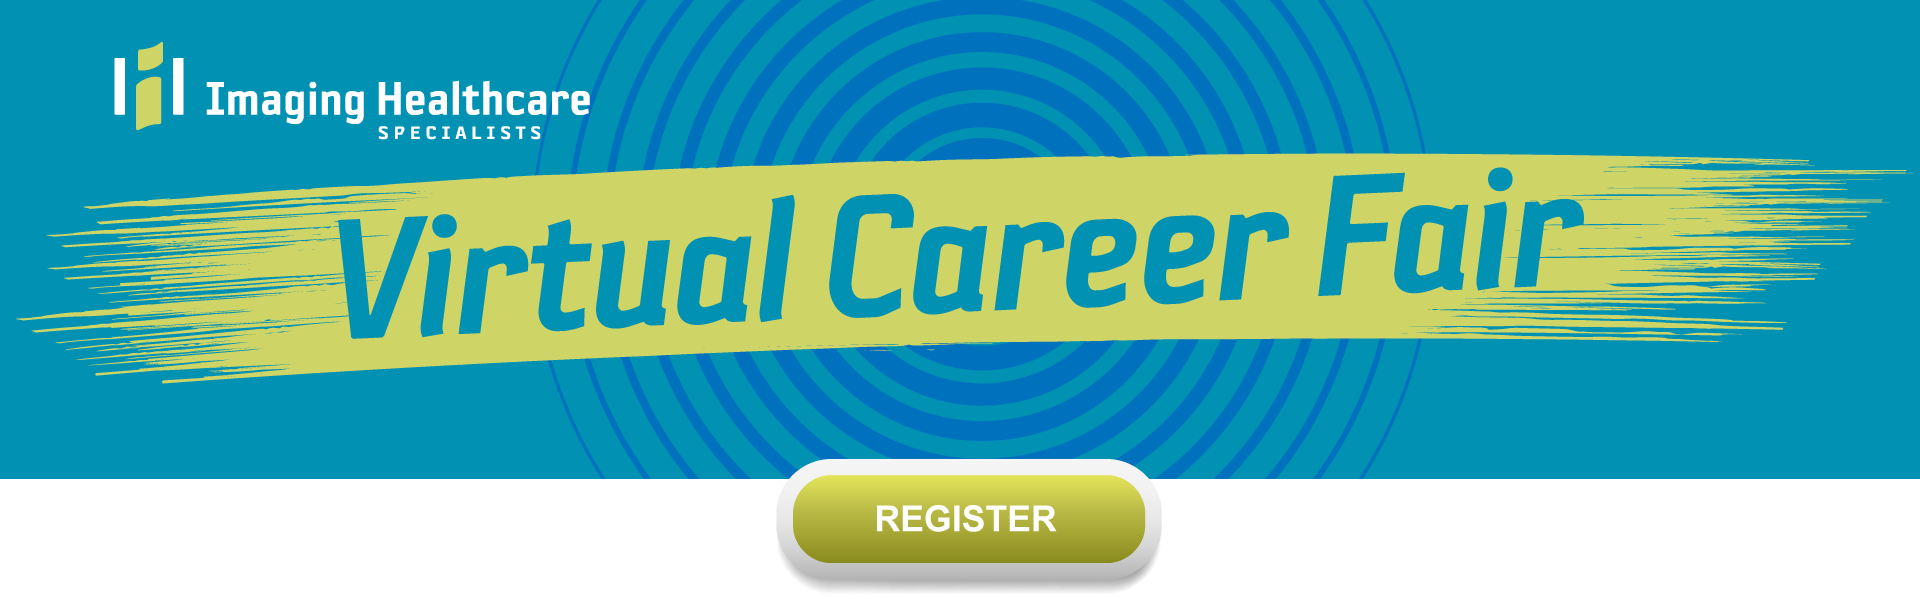 Welcome to the IHS Virtual Candidate Platform